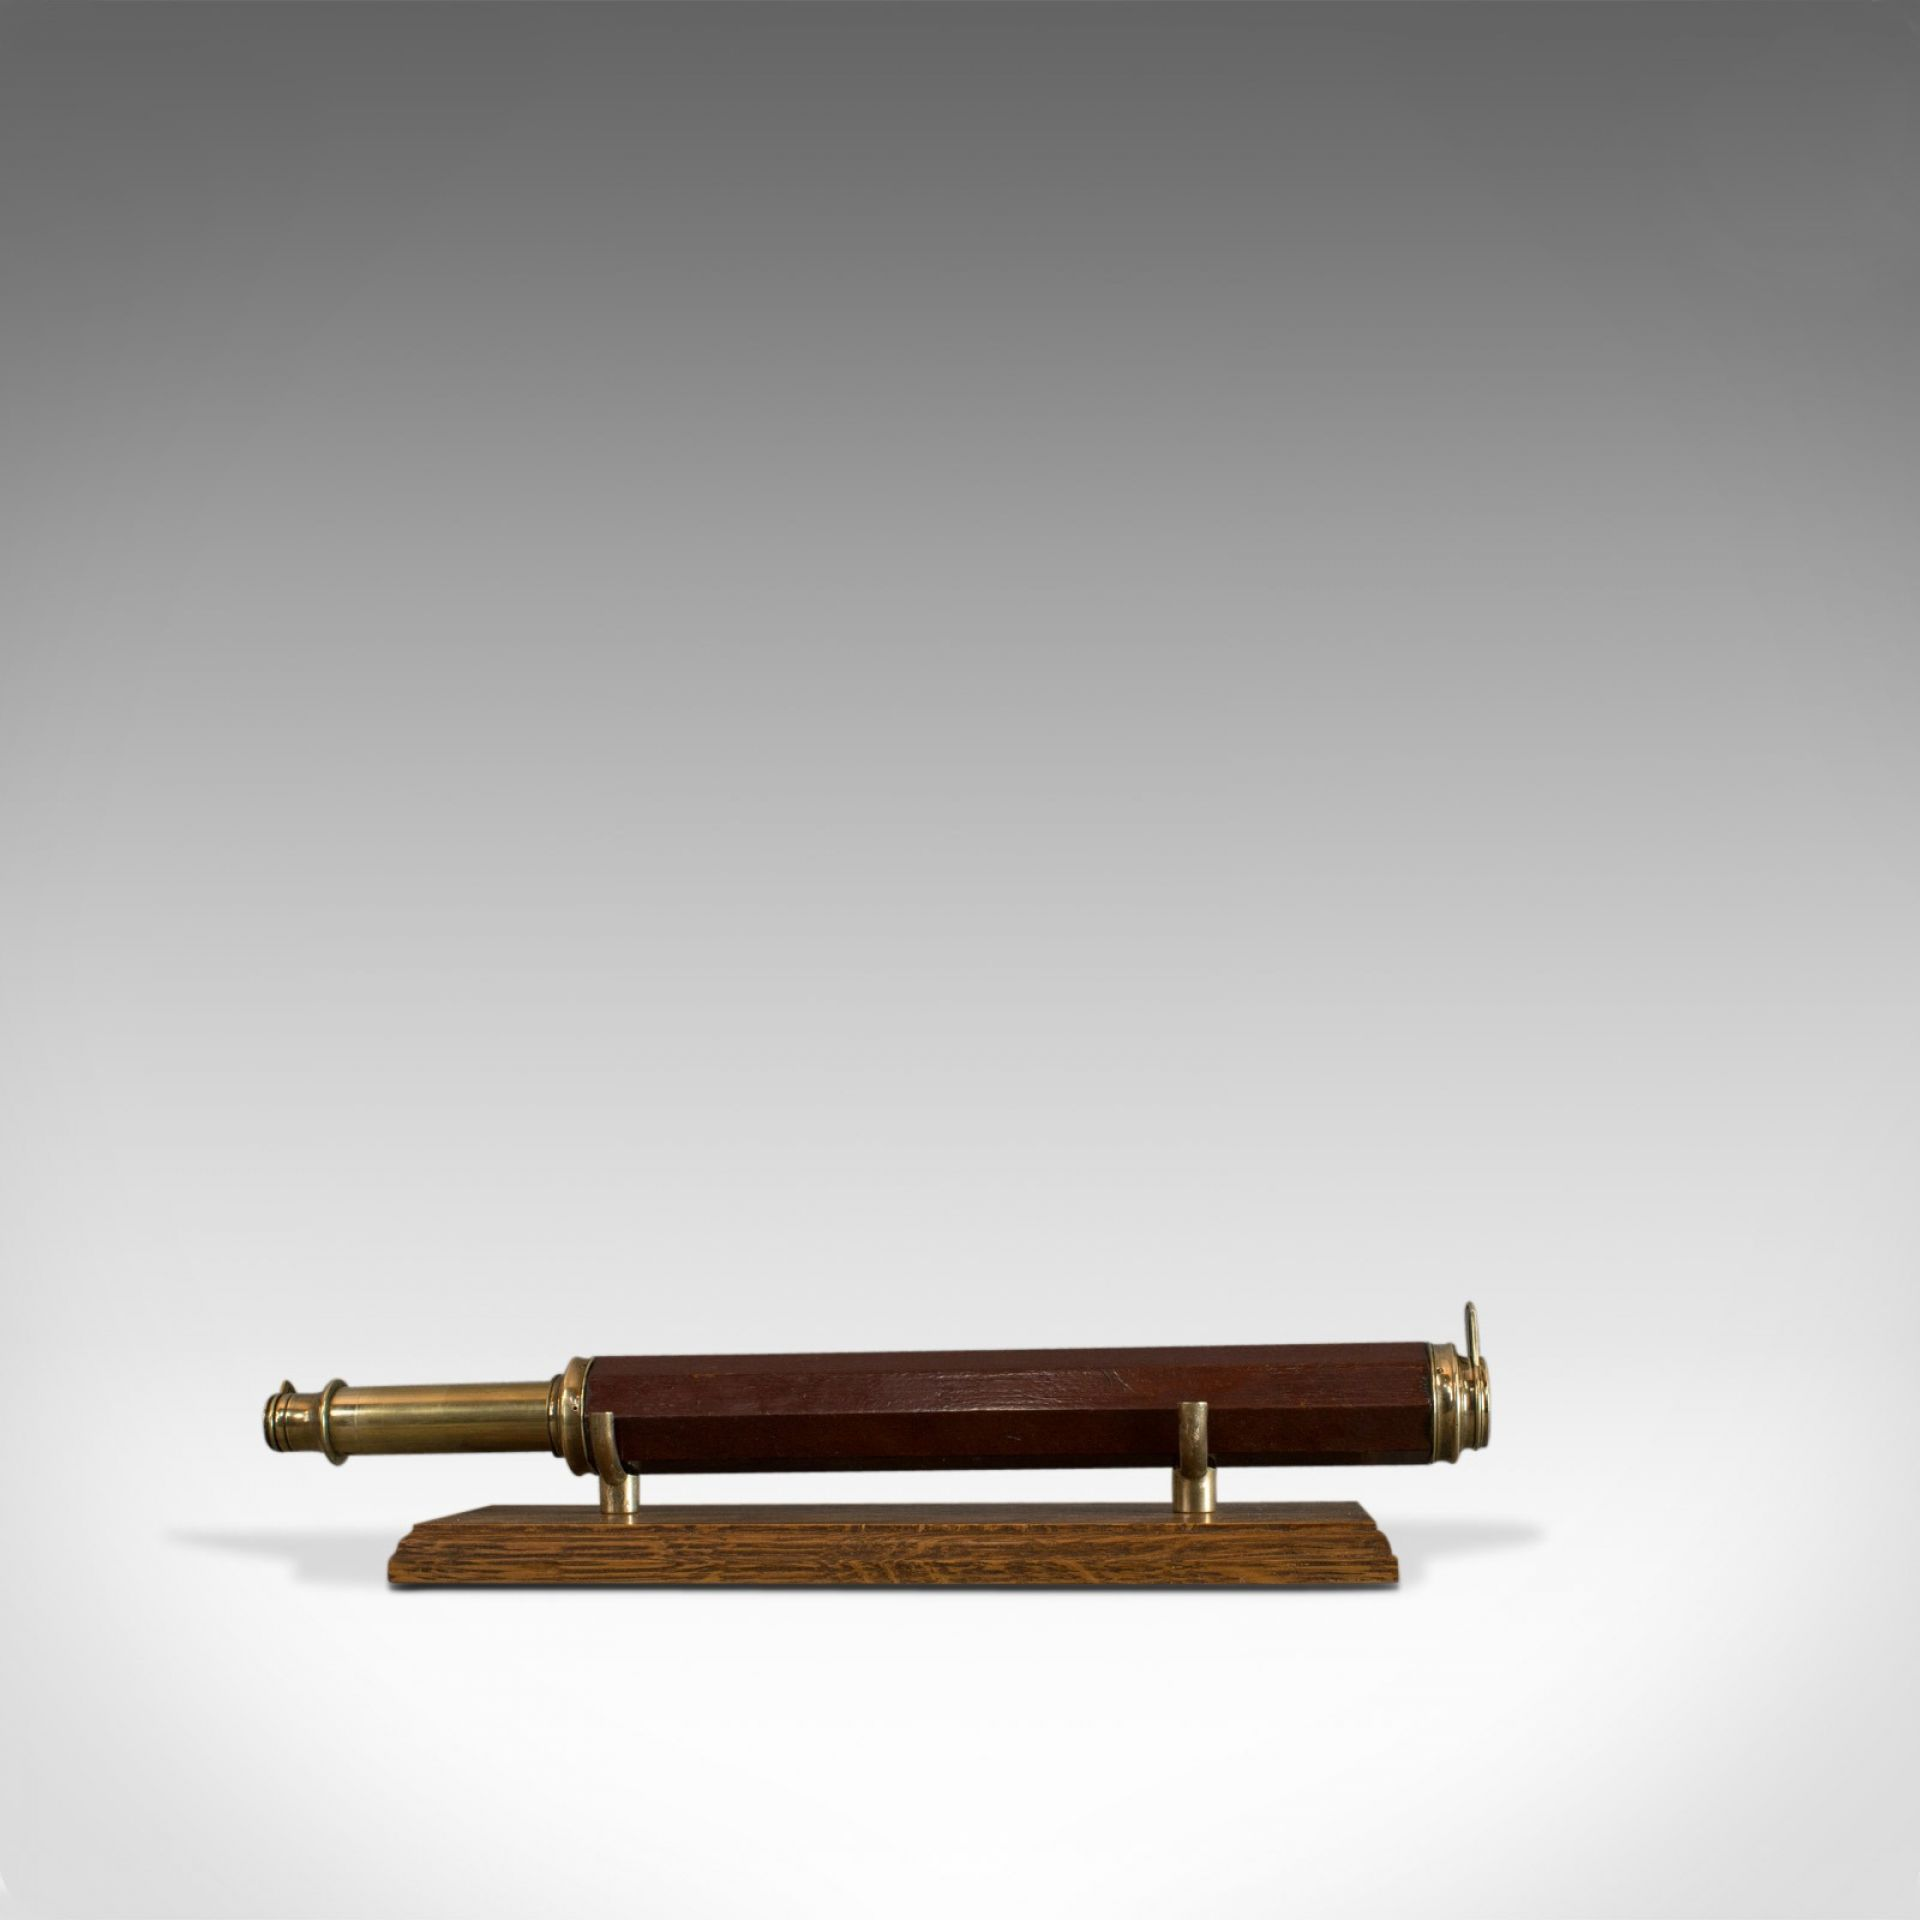 Antique Telescope, English, Single Draw, Refractor, Terrestrial, Circa 1760